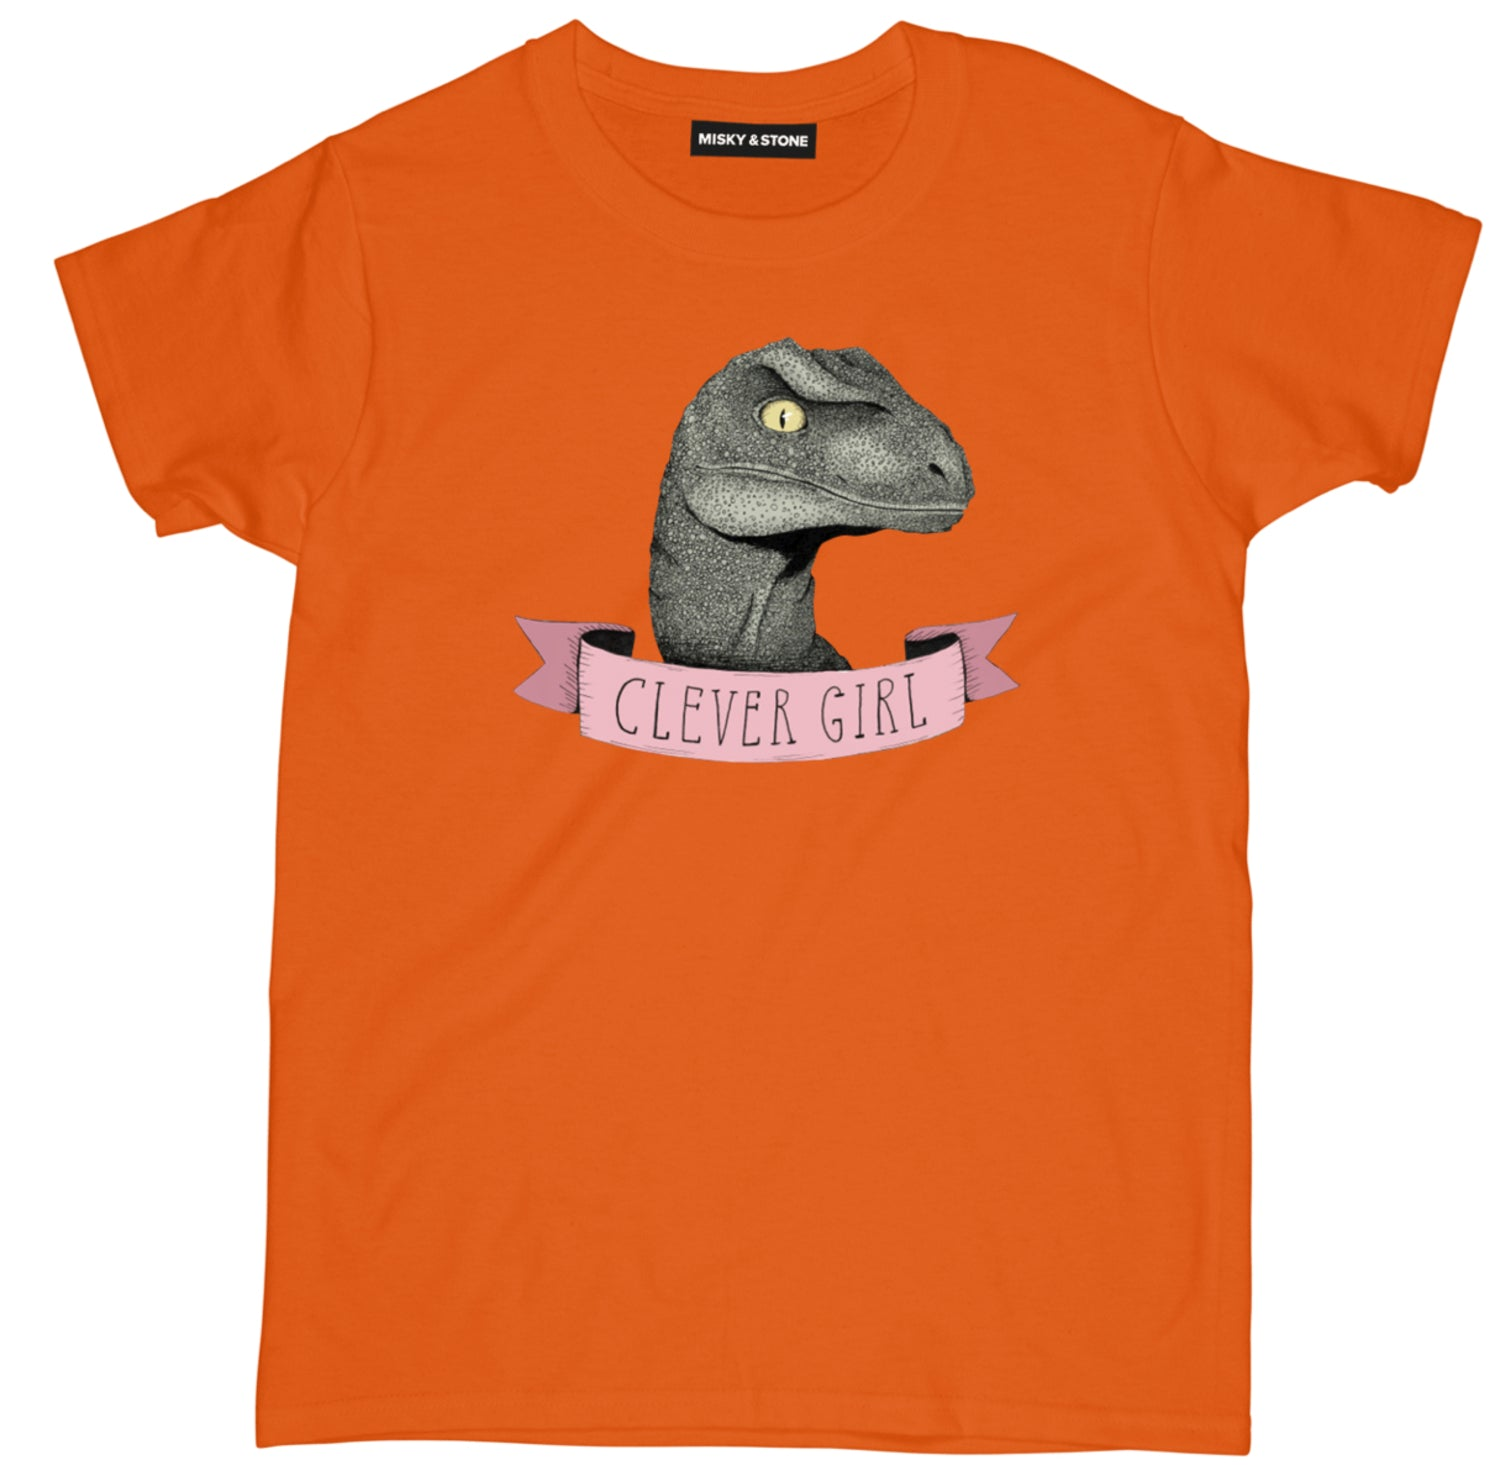 Clever Girl Shirt